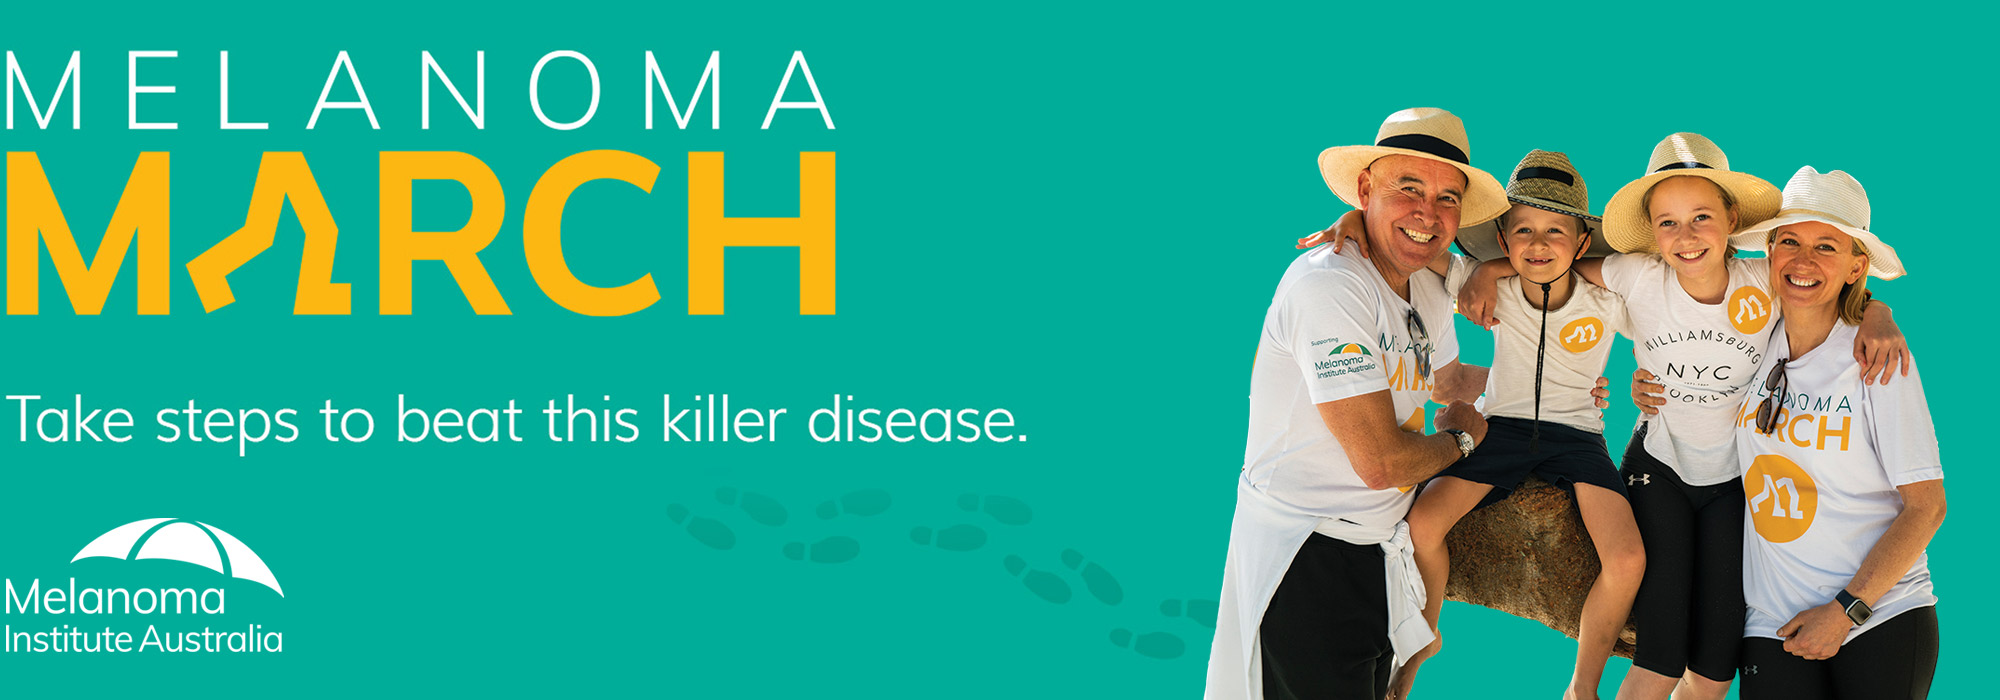 Melanoma March | Take steps to beat this killer disease | Melanoma Institute Australia